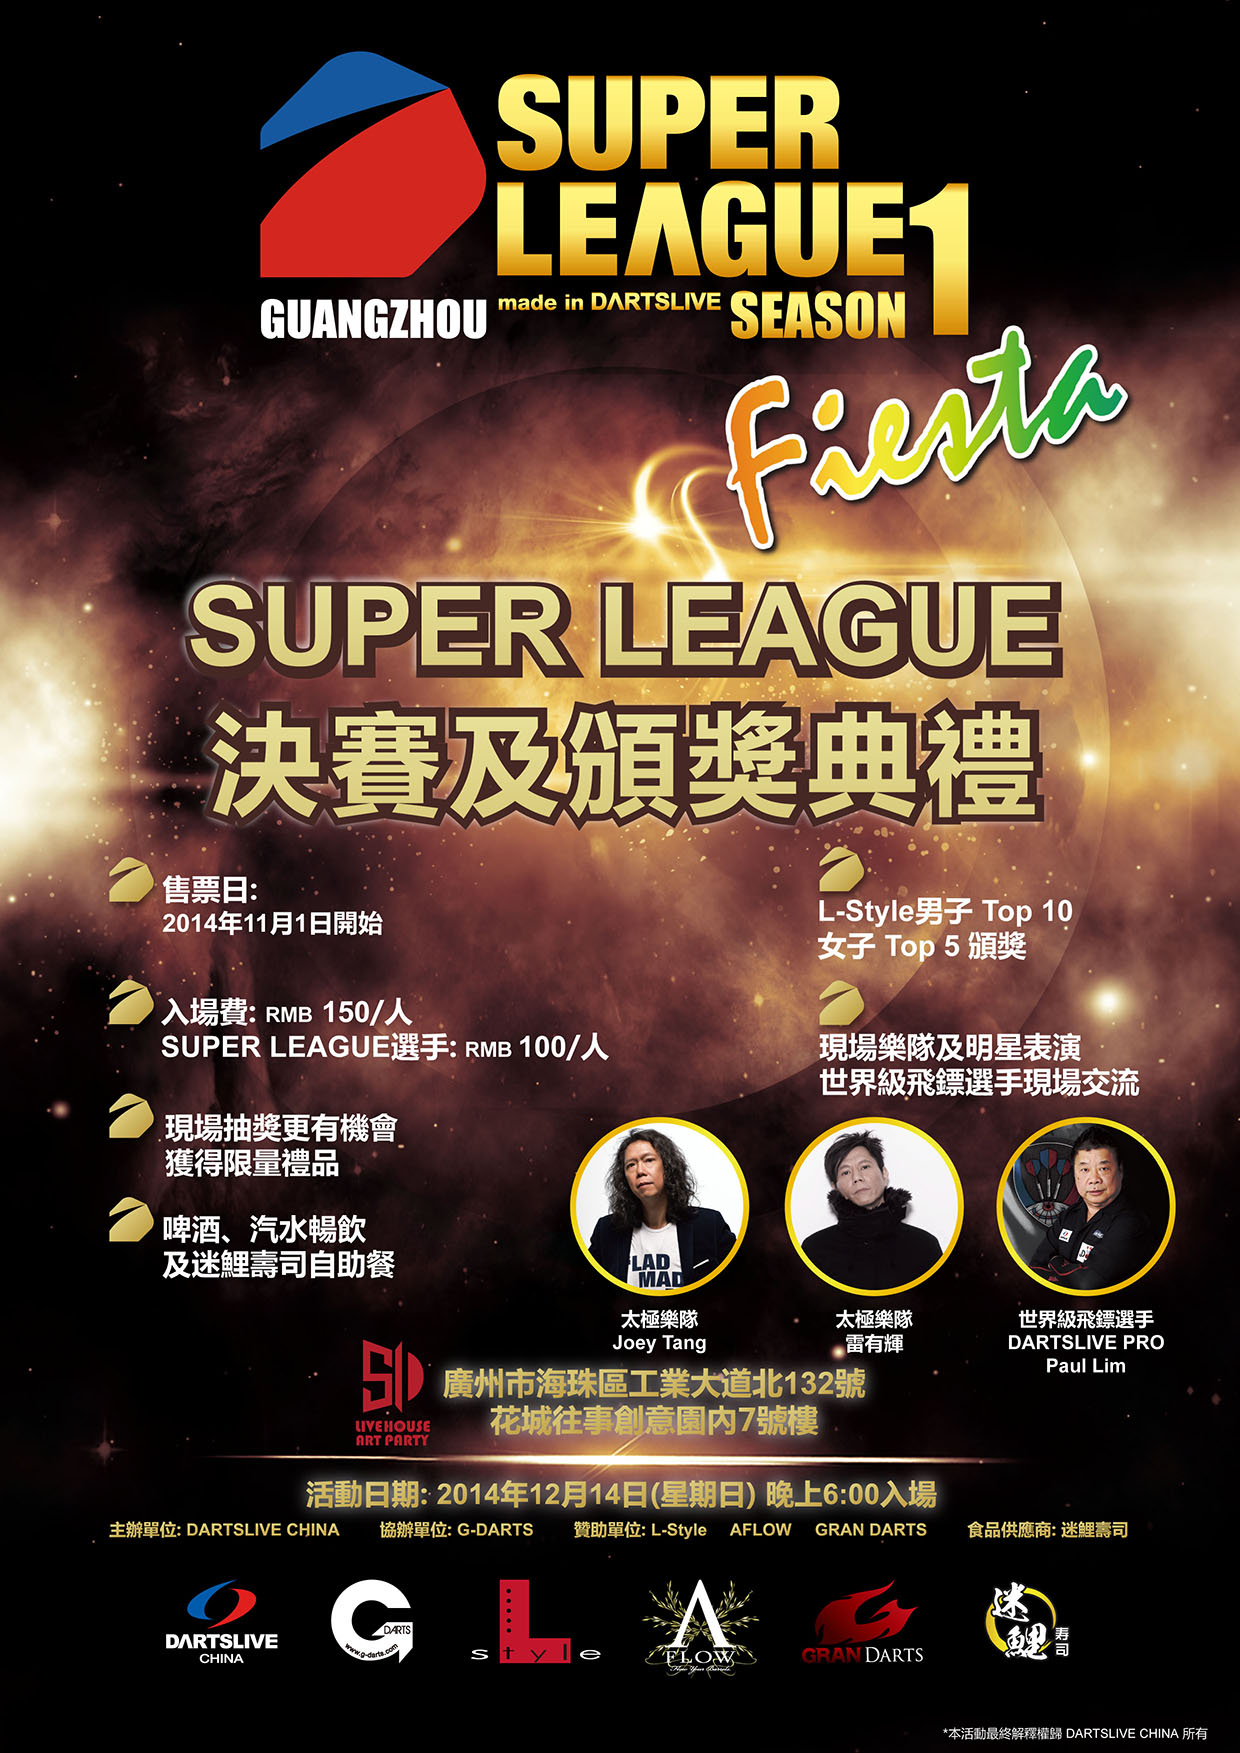 GZ_SUPER_LEAGUE_20141110_2.jpg